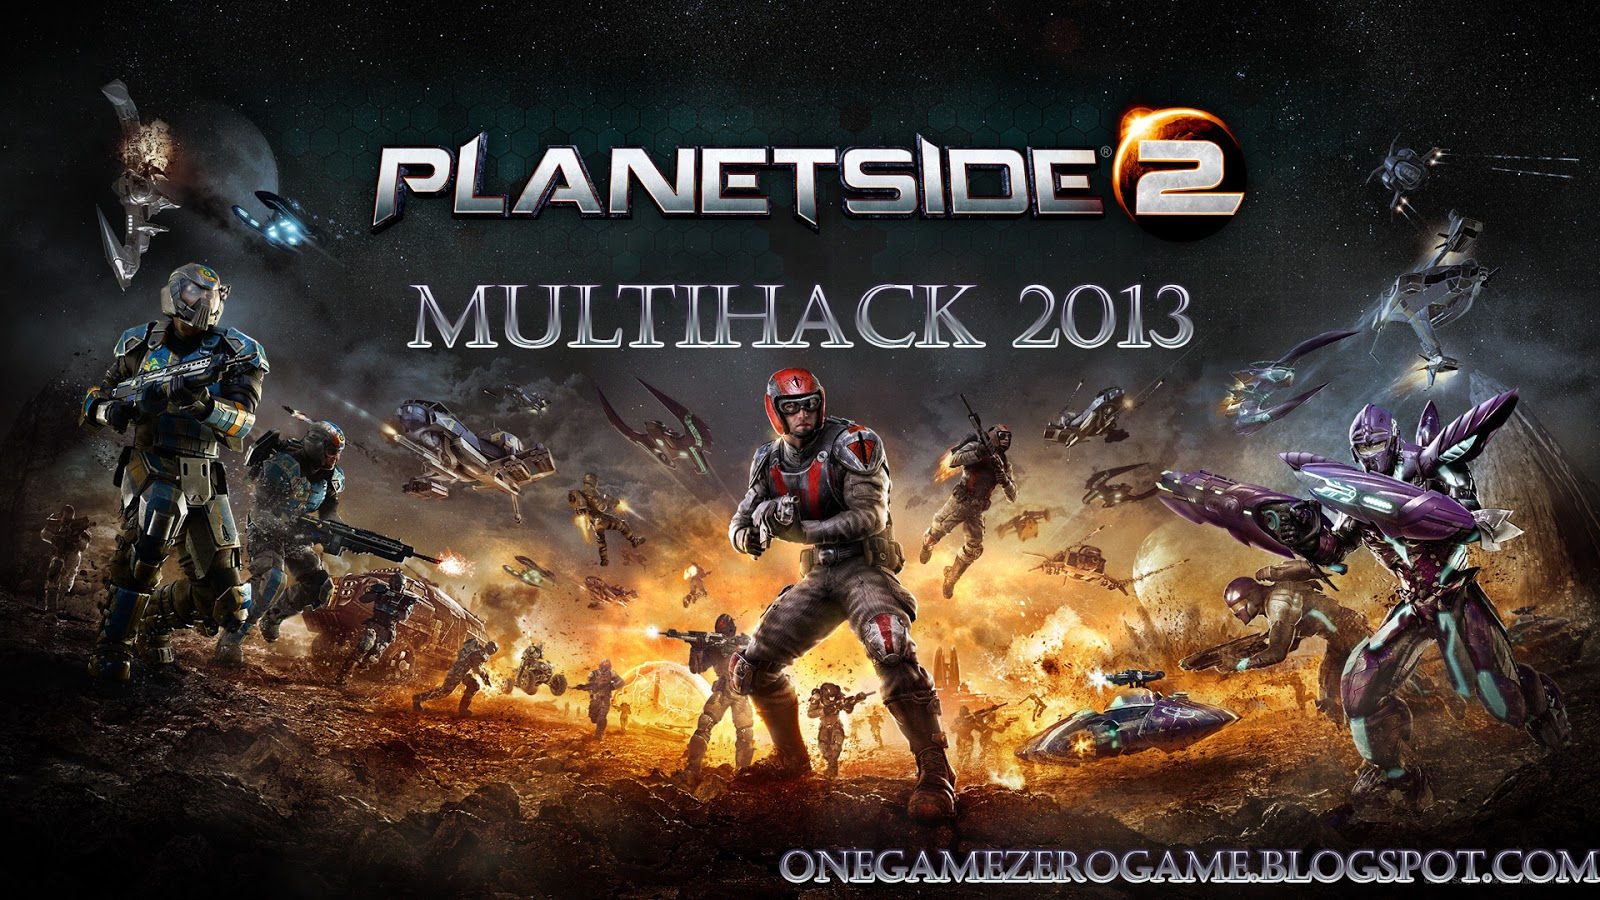 PlanetSide 2 Multihack 2013 can give you unlimitet capabilities : one